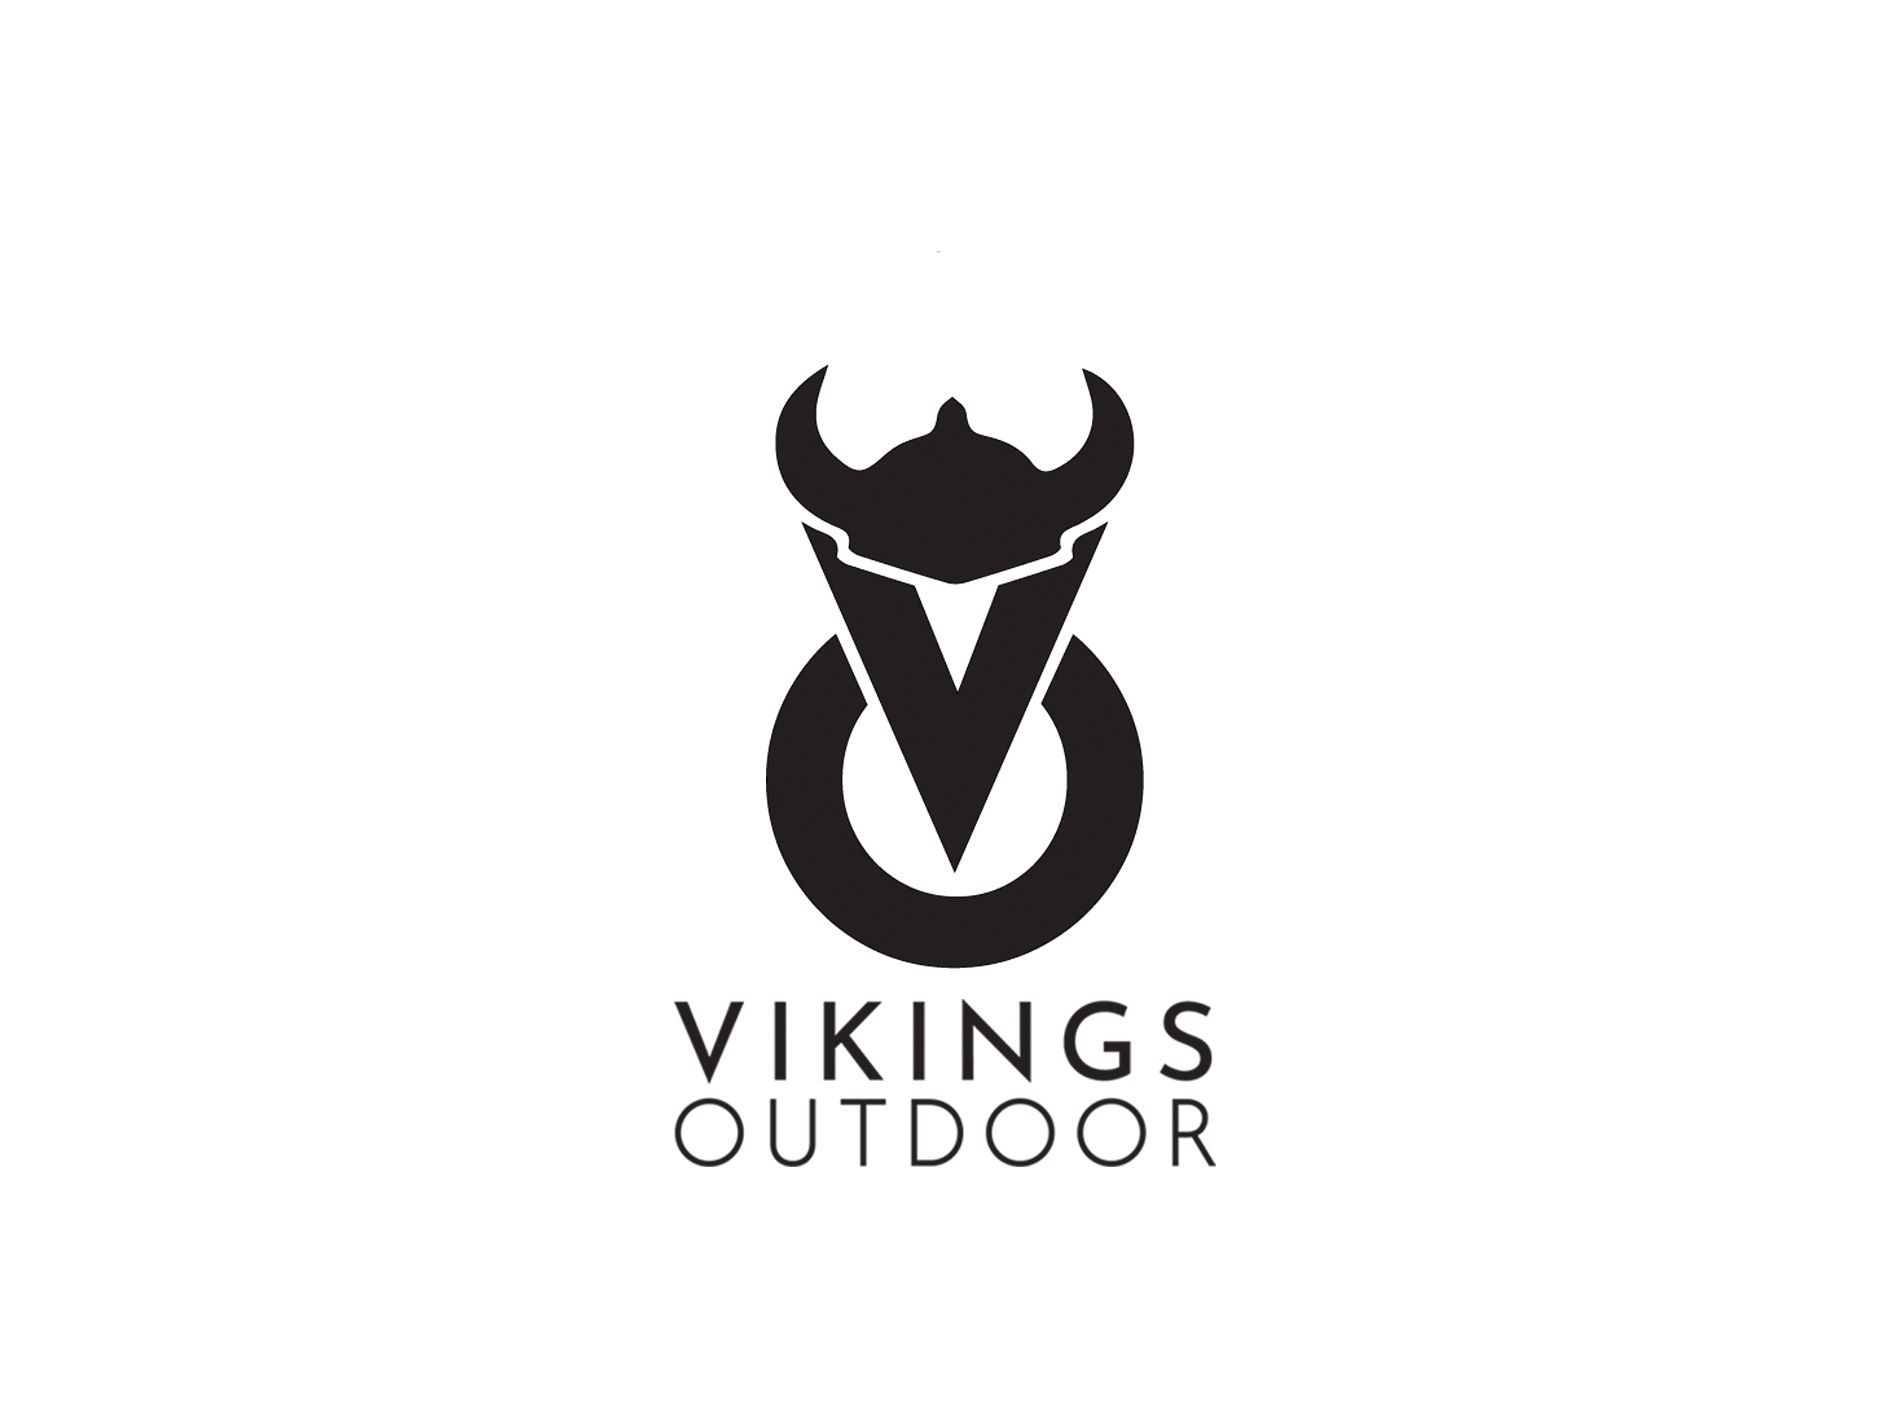 Vikings Outdoor